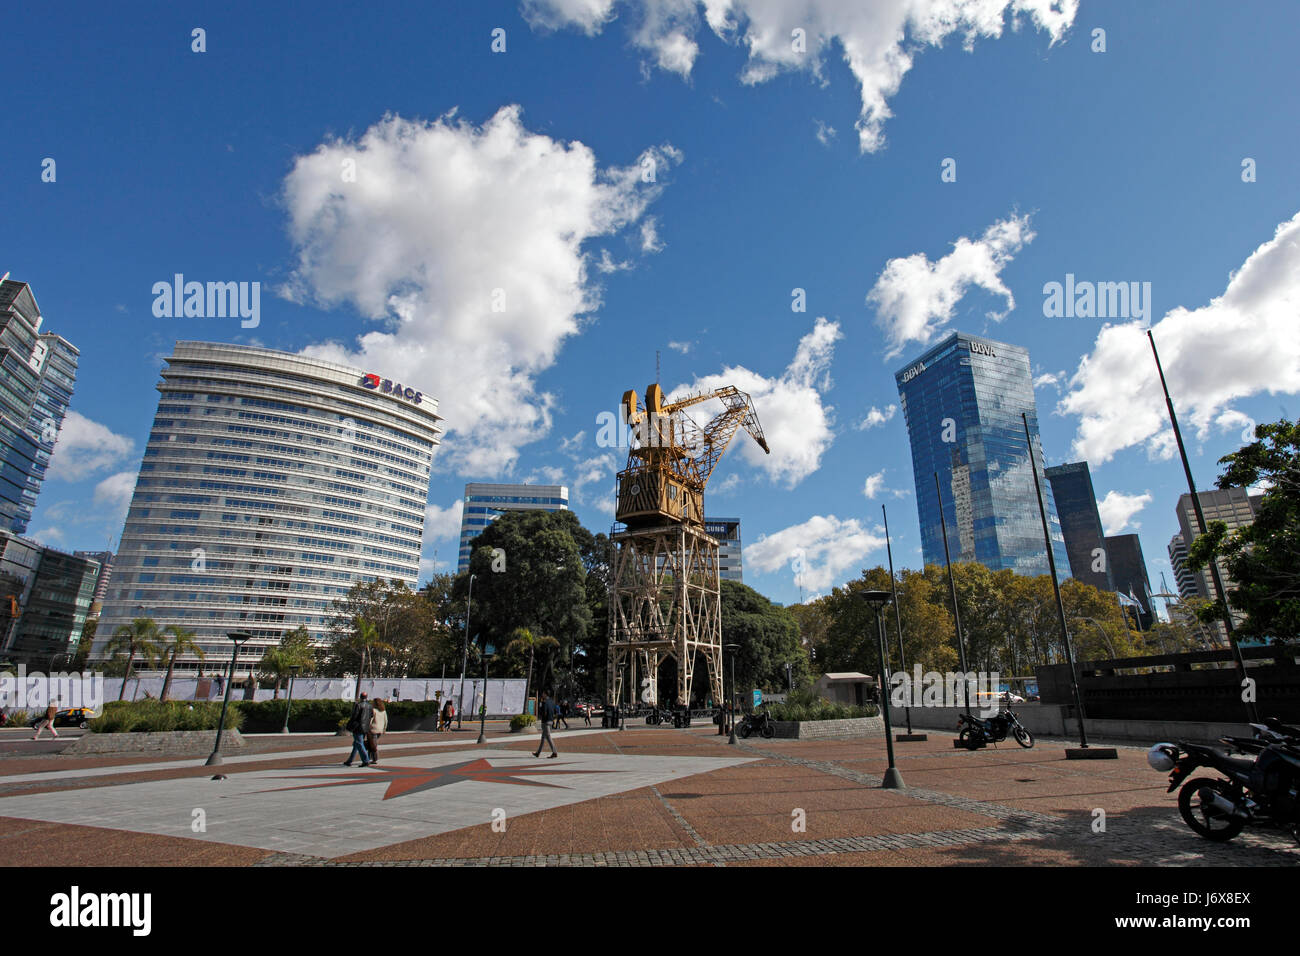 Downtown Buenos Aires, and area that has been totally redeveloped with regeneration of Warehouses, company buildings, - Stock Image